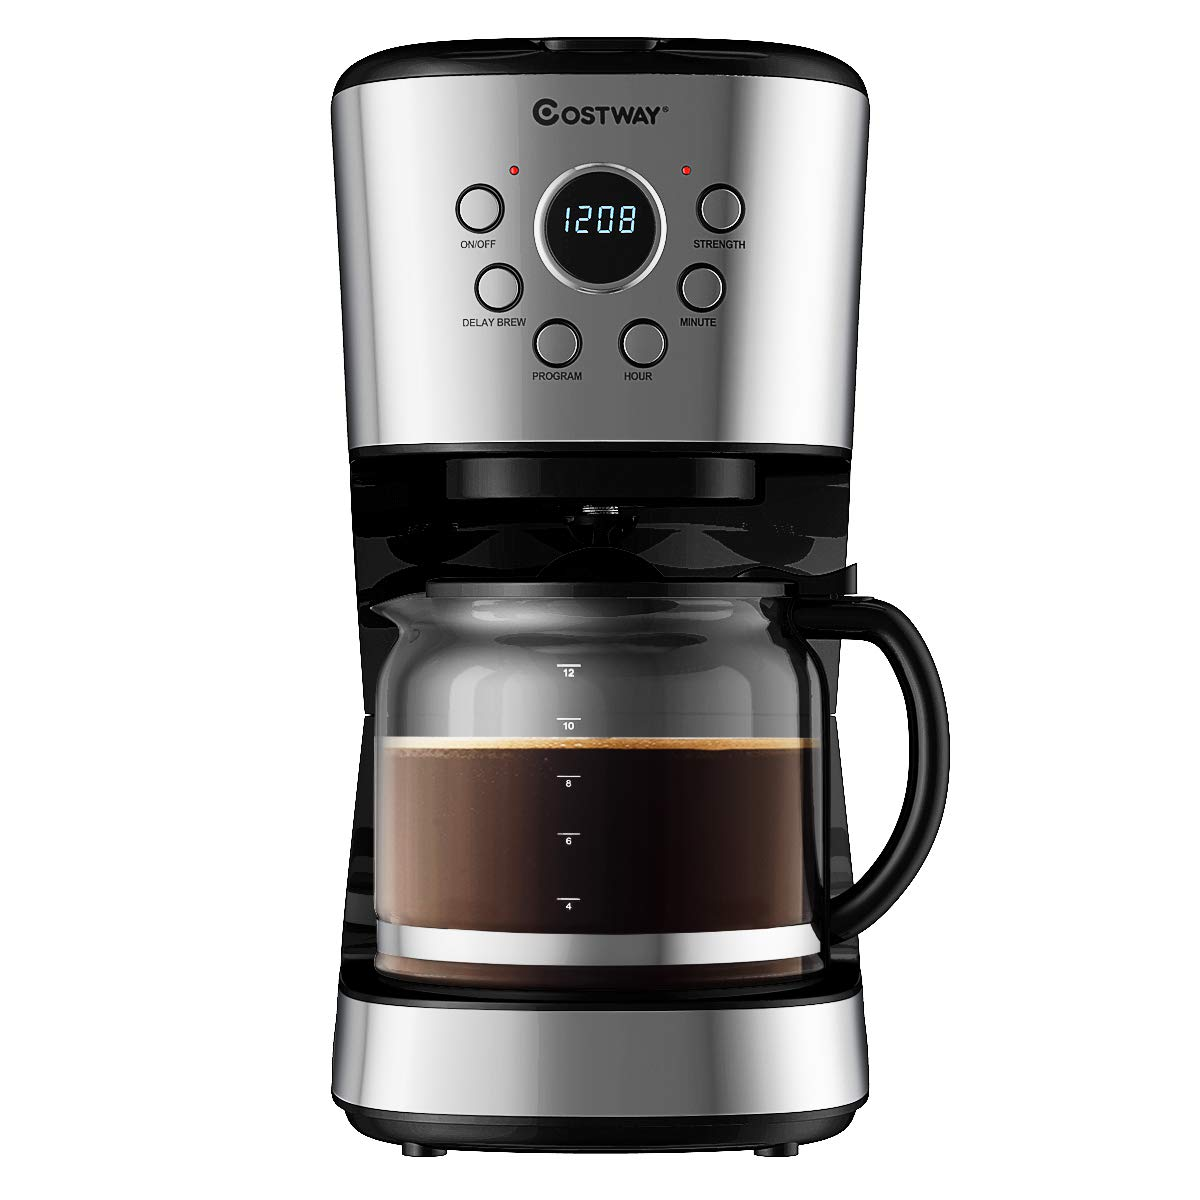 COSTWAY 12-Cup Coffee Maker, Programmable Brew Machine with LCD Display, Removable Mesh Filter, Warming Plate, Anti-drip System, Sprinkler Head, with 1.8L Glass Carafe and Spoon, Stainless Steel by COSTWAY